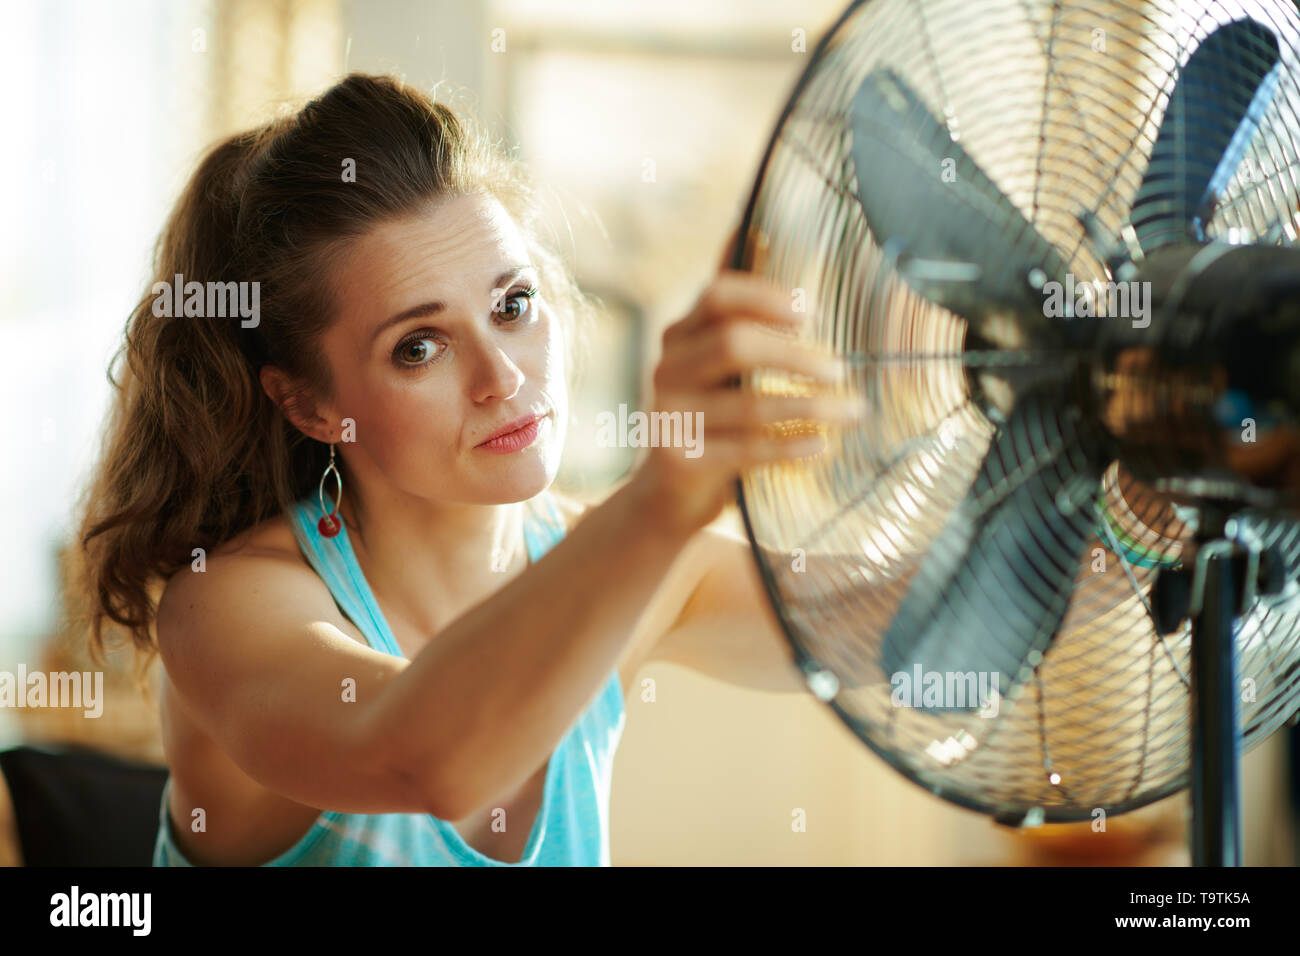 Portrait of woman in the modern living room in sunny hot summer day enjoying fresh air in the front of working fan suffering from summer heat. - Stock Image